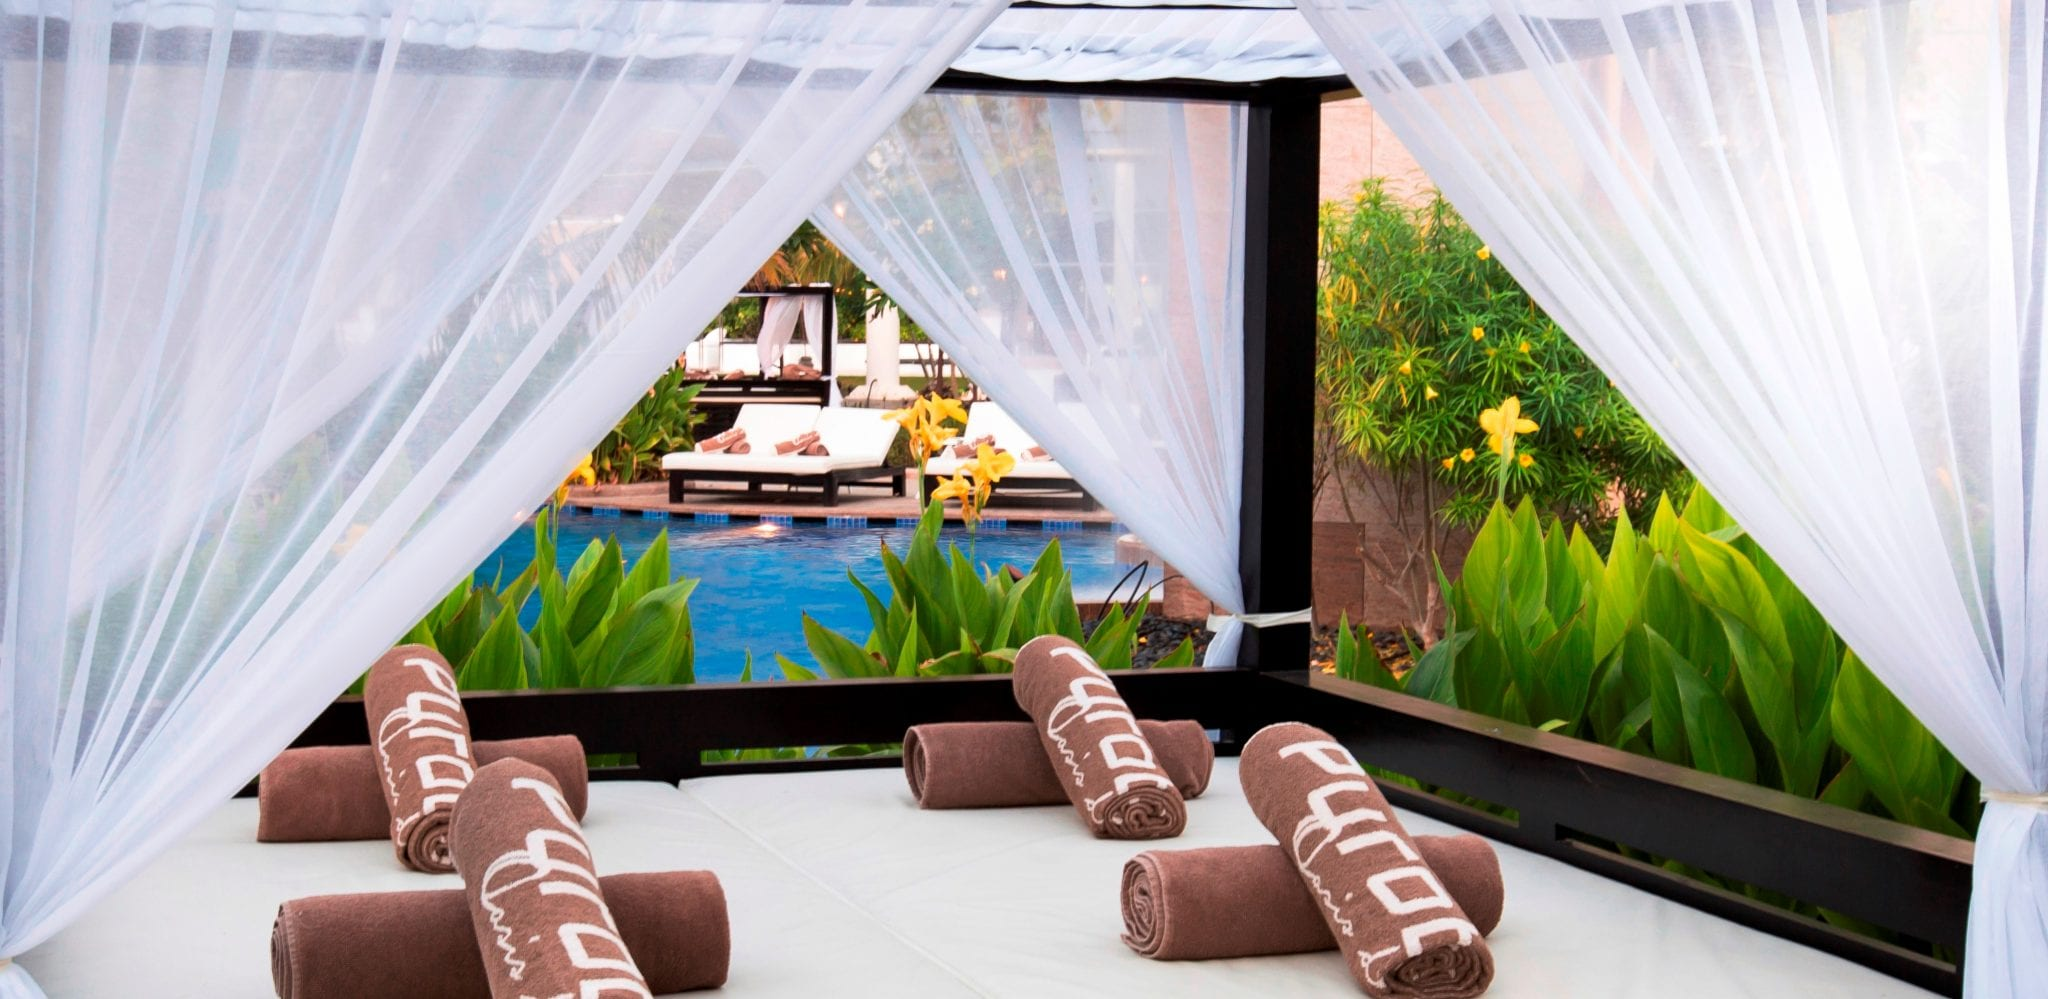 Reserve Your Cabana at These Poolside Retreats